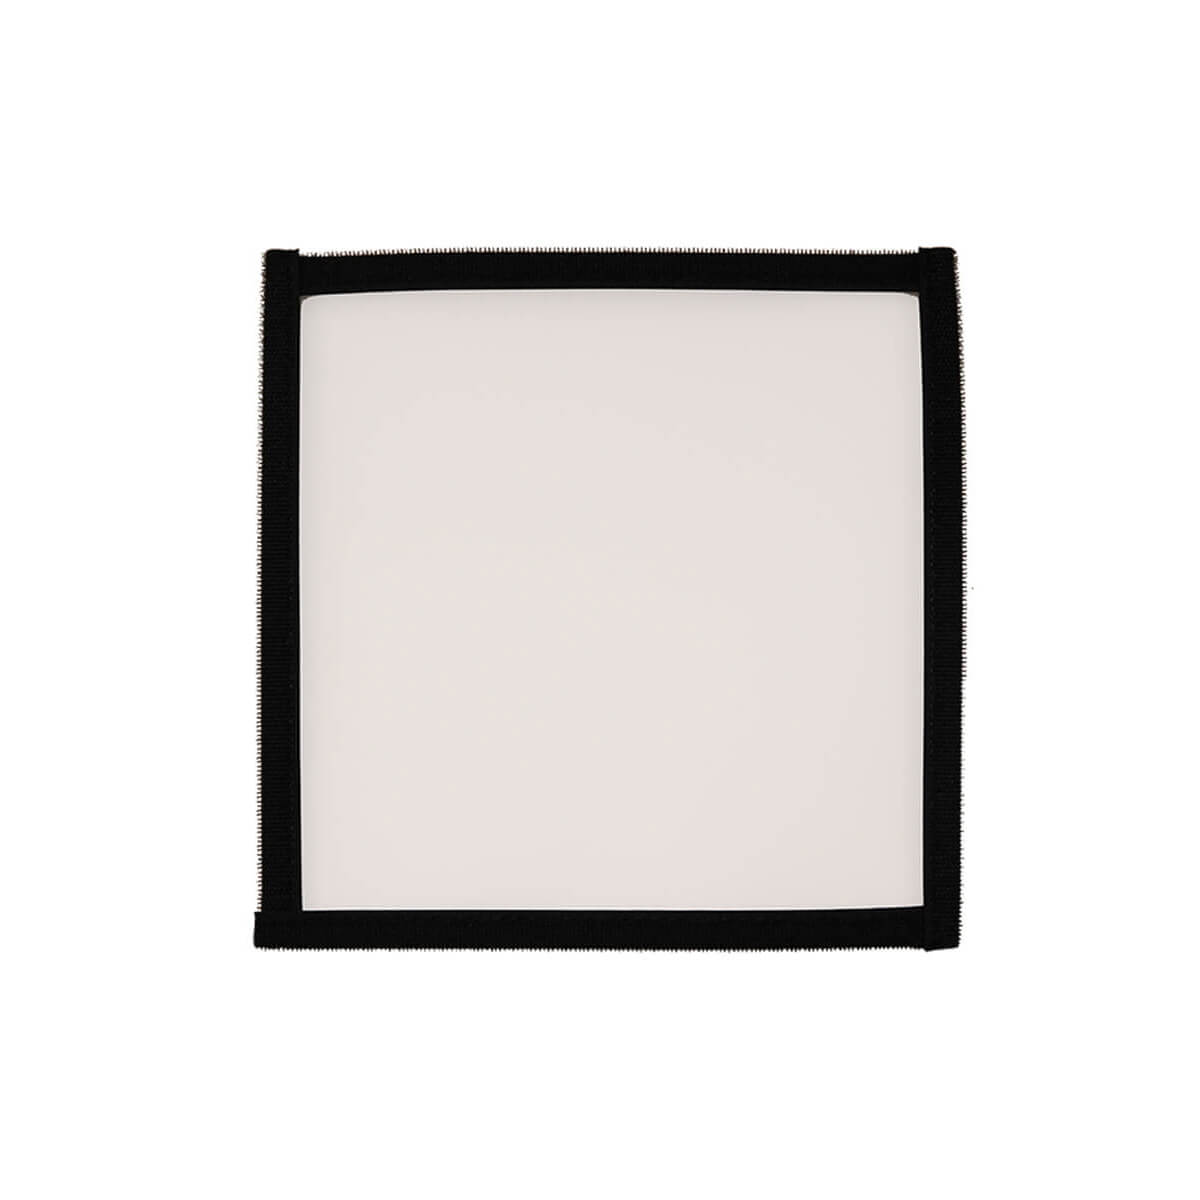 1_ENG Diffuser Filter for Softbox